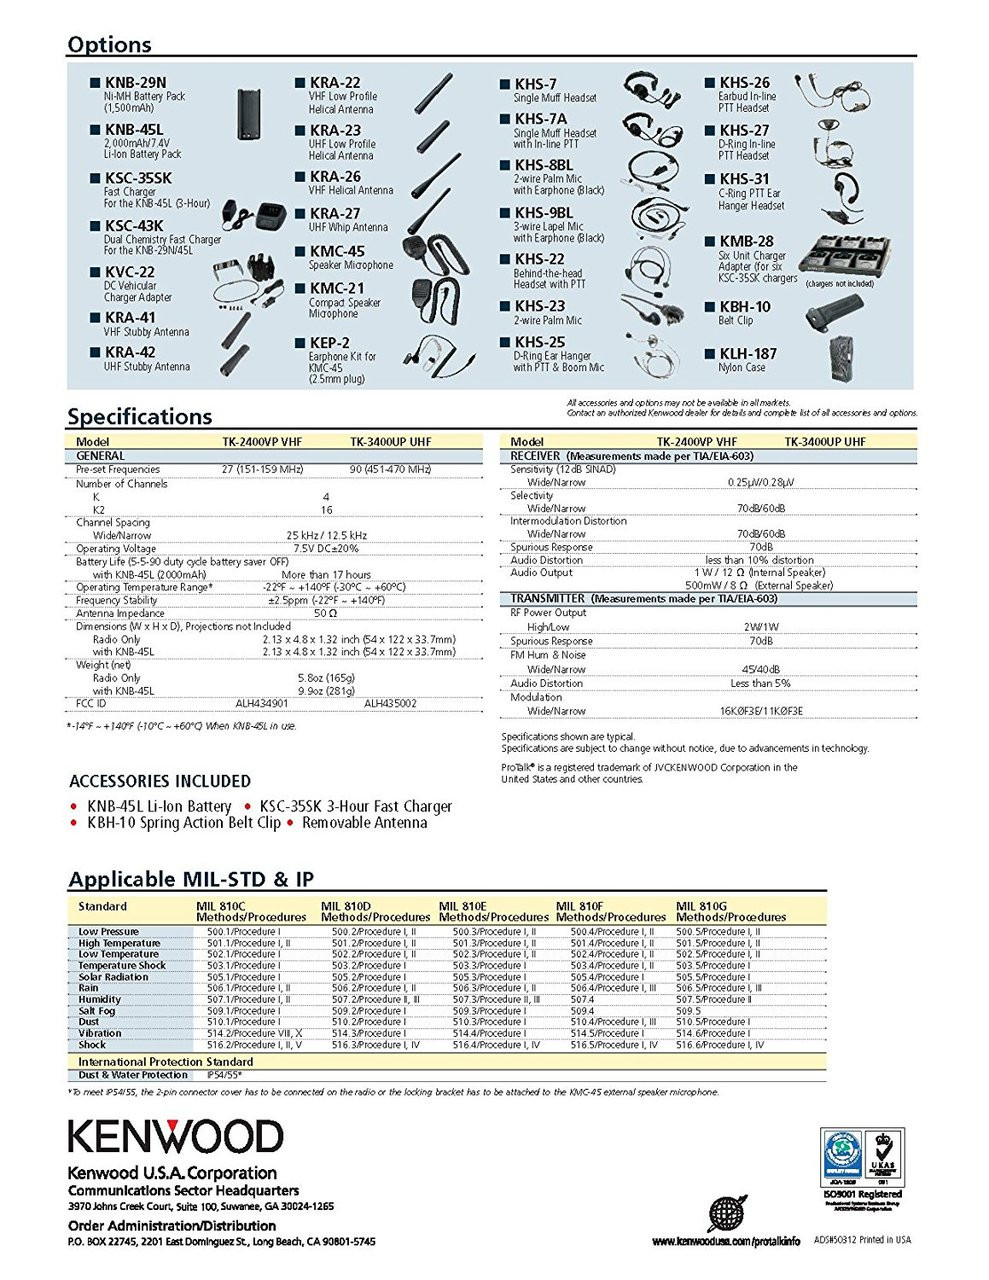 Kenwood ProTalk TK2400V4P 2 Watt 4 Channel VHF Two Way Radio Spec Sheet Page 2 of 2